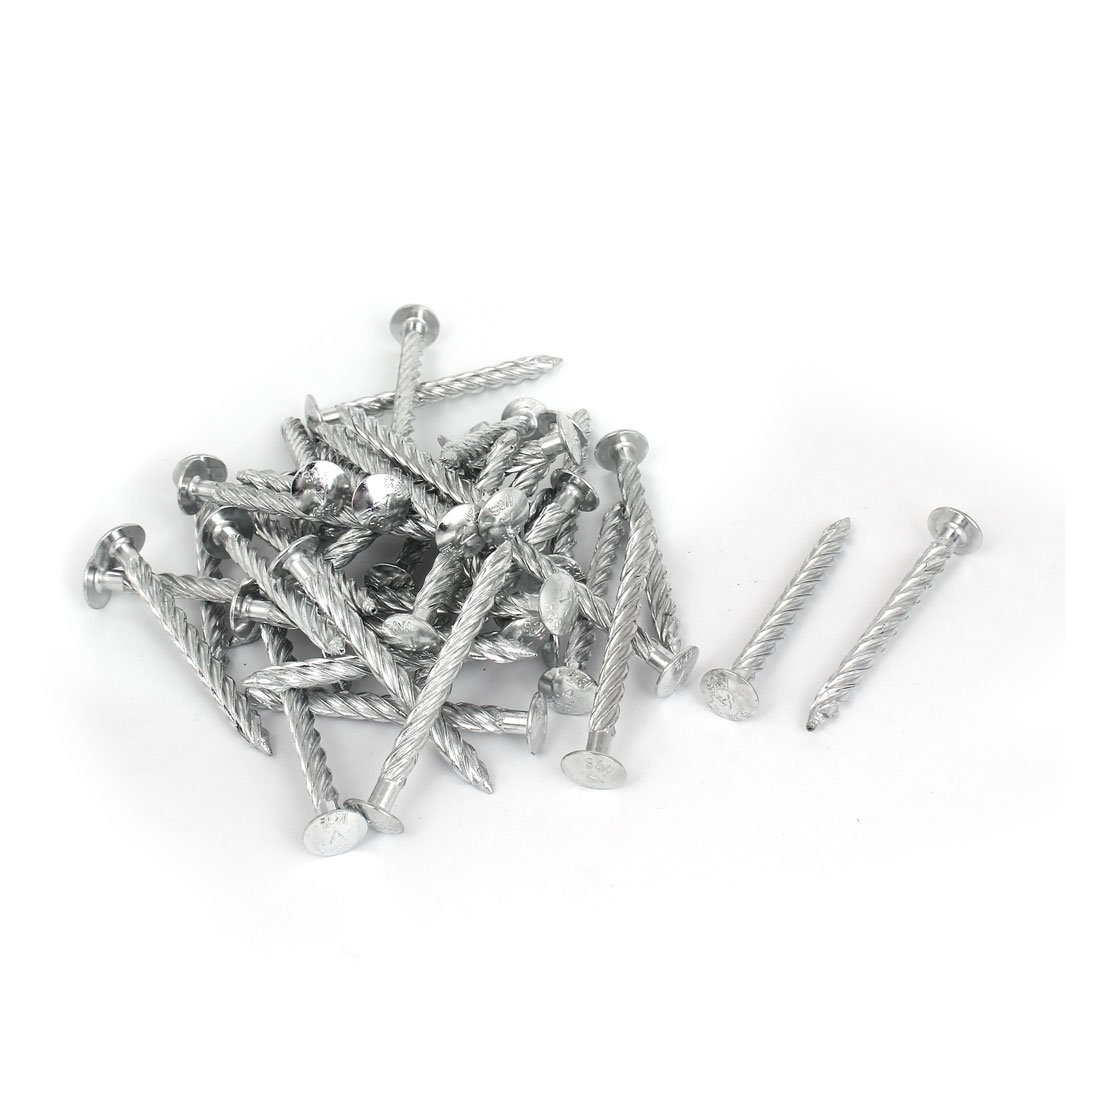 75mm Length x 7mm Dia Galvanised Square Twist Nails Spiral Screw 50pcs